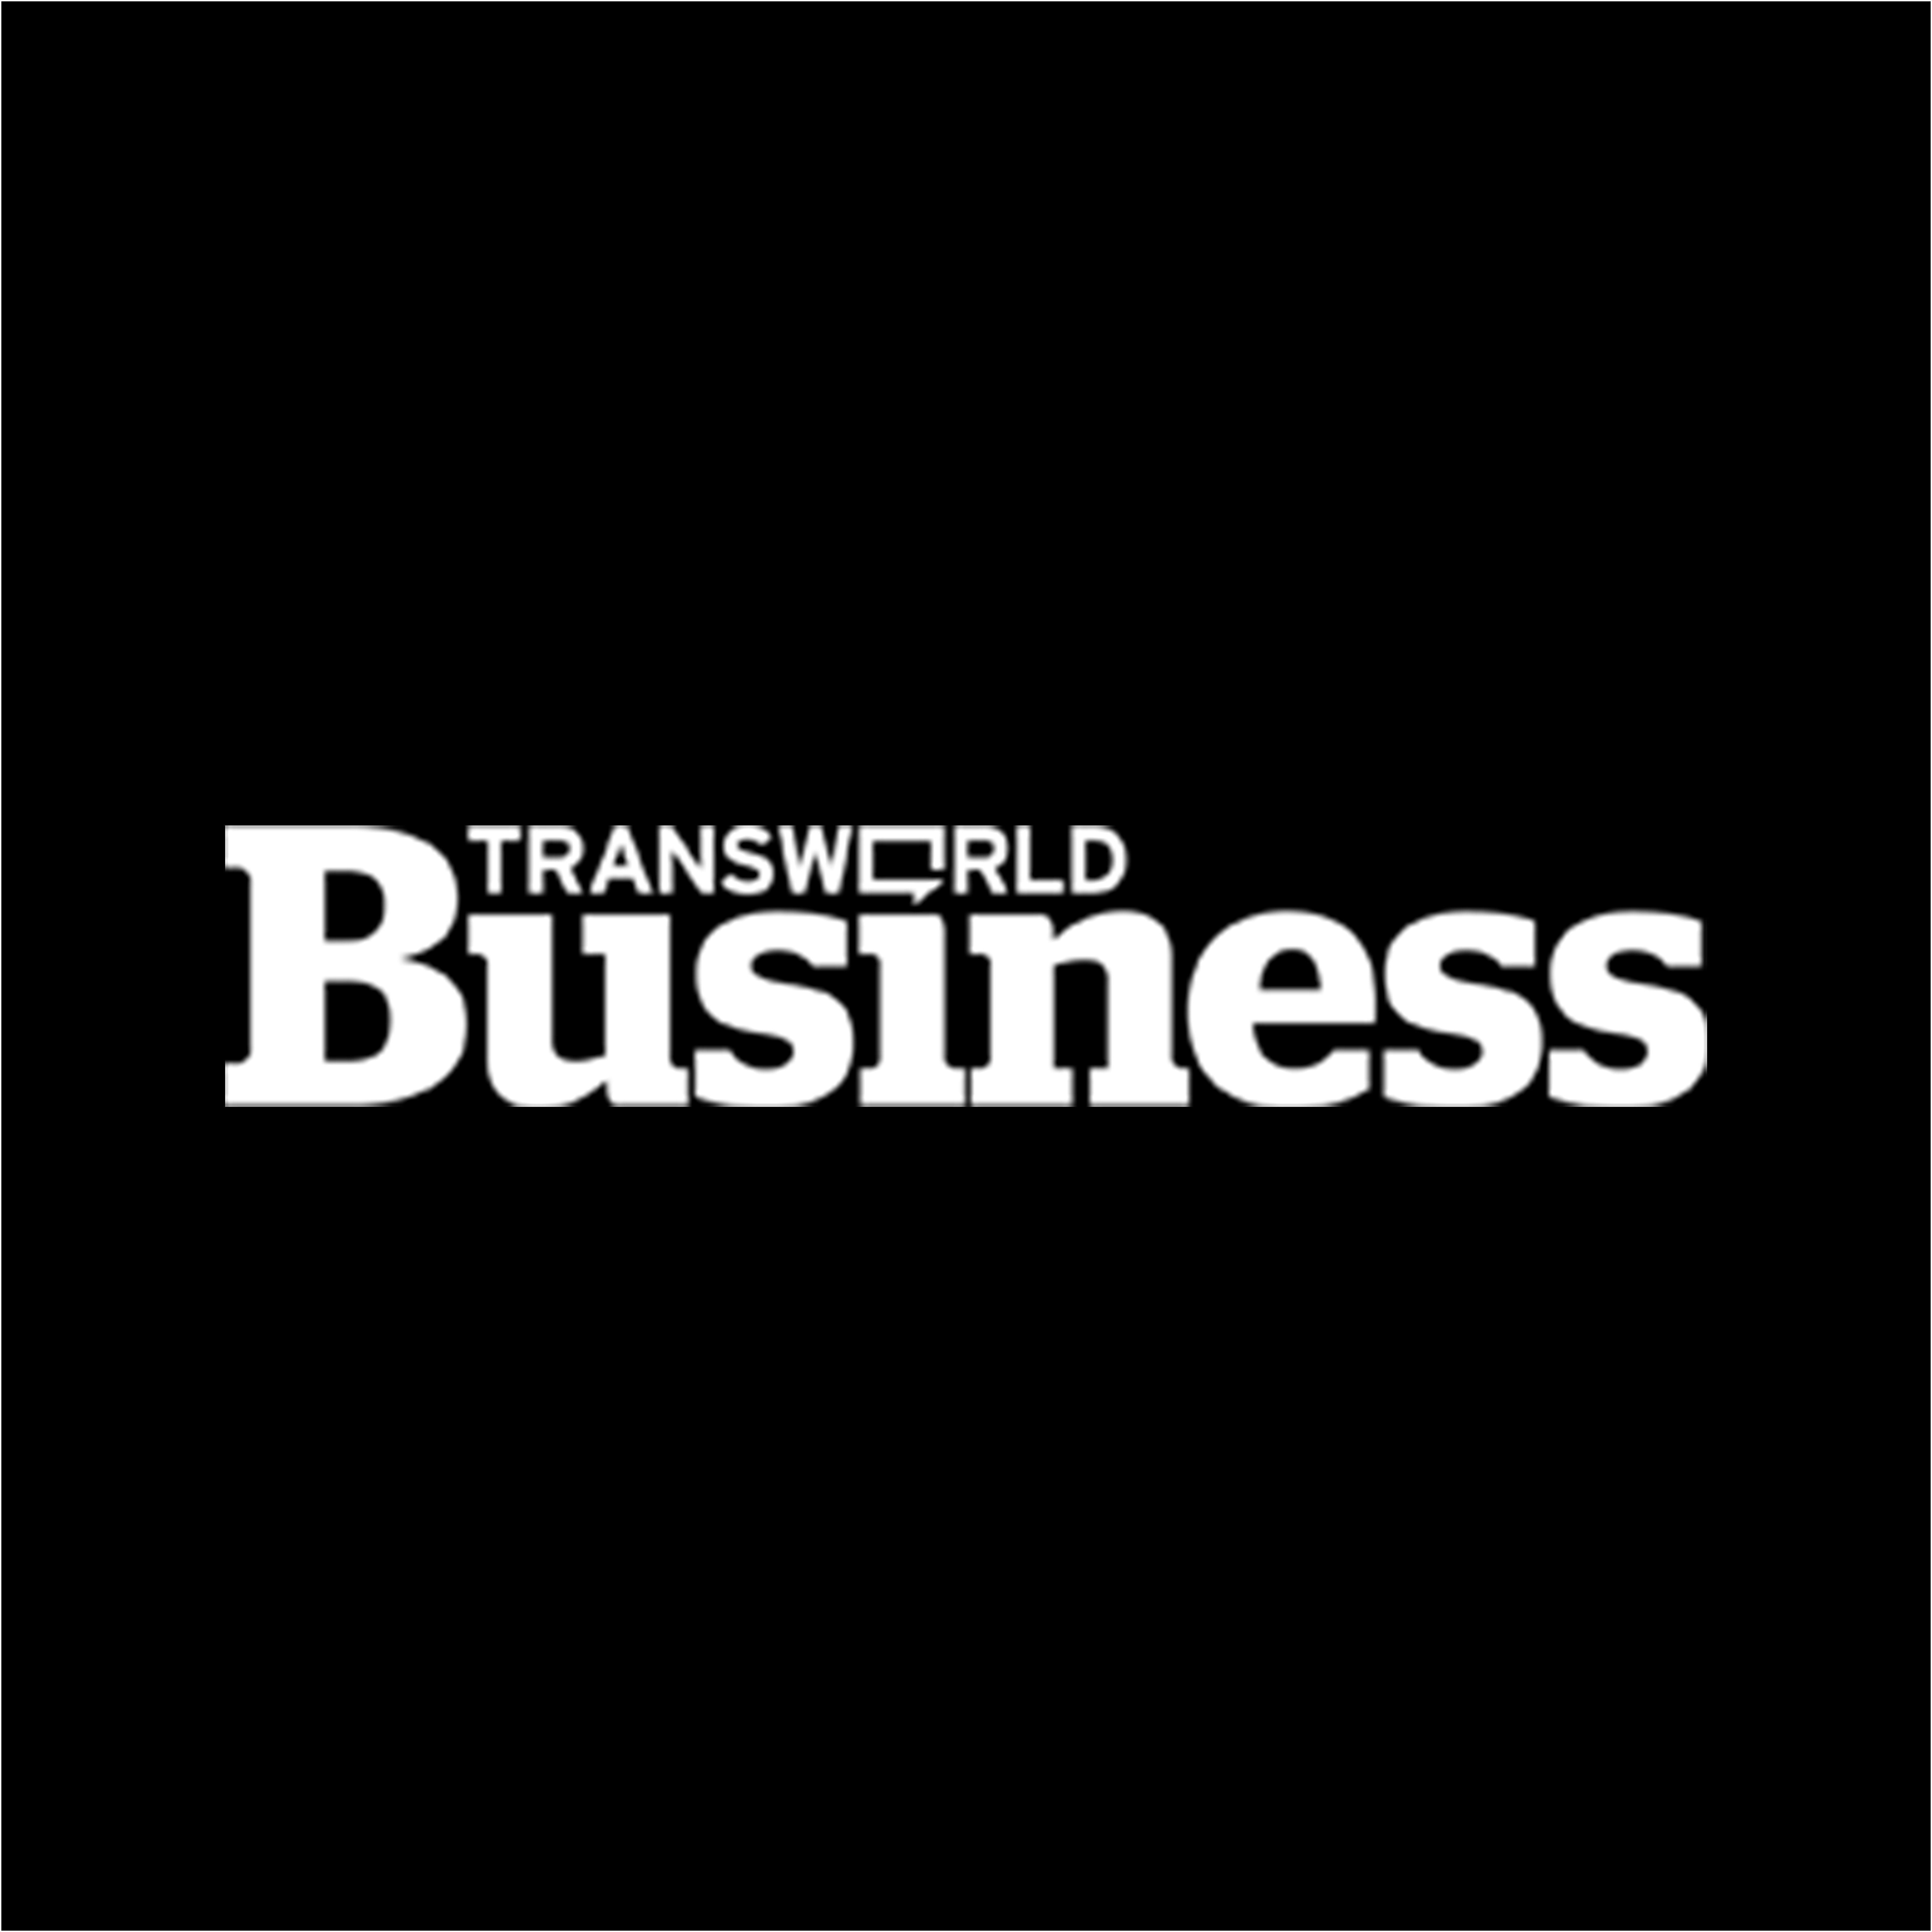 Transworld Business Magazine Transworld Business the Leader In Boardsports News